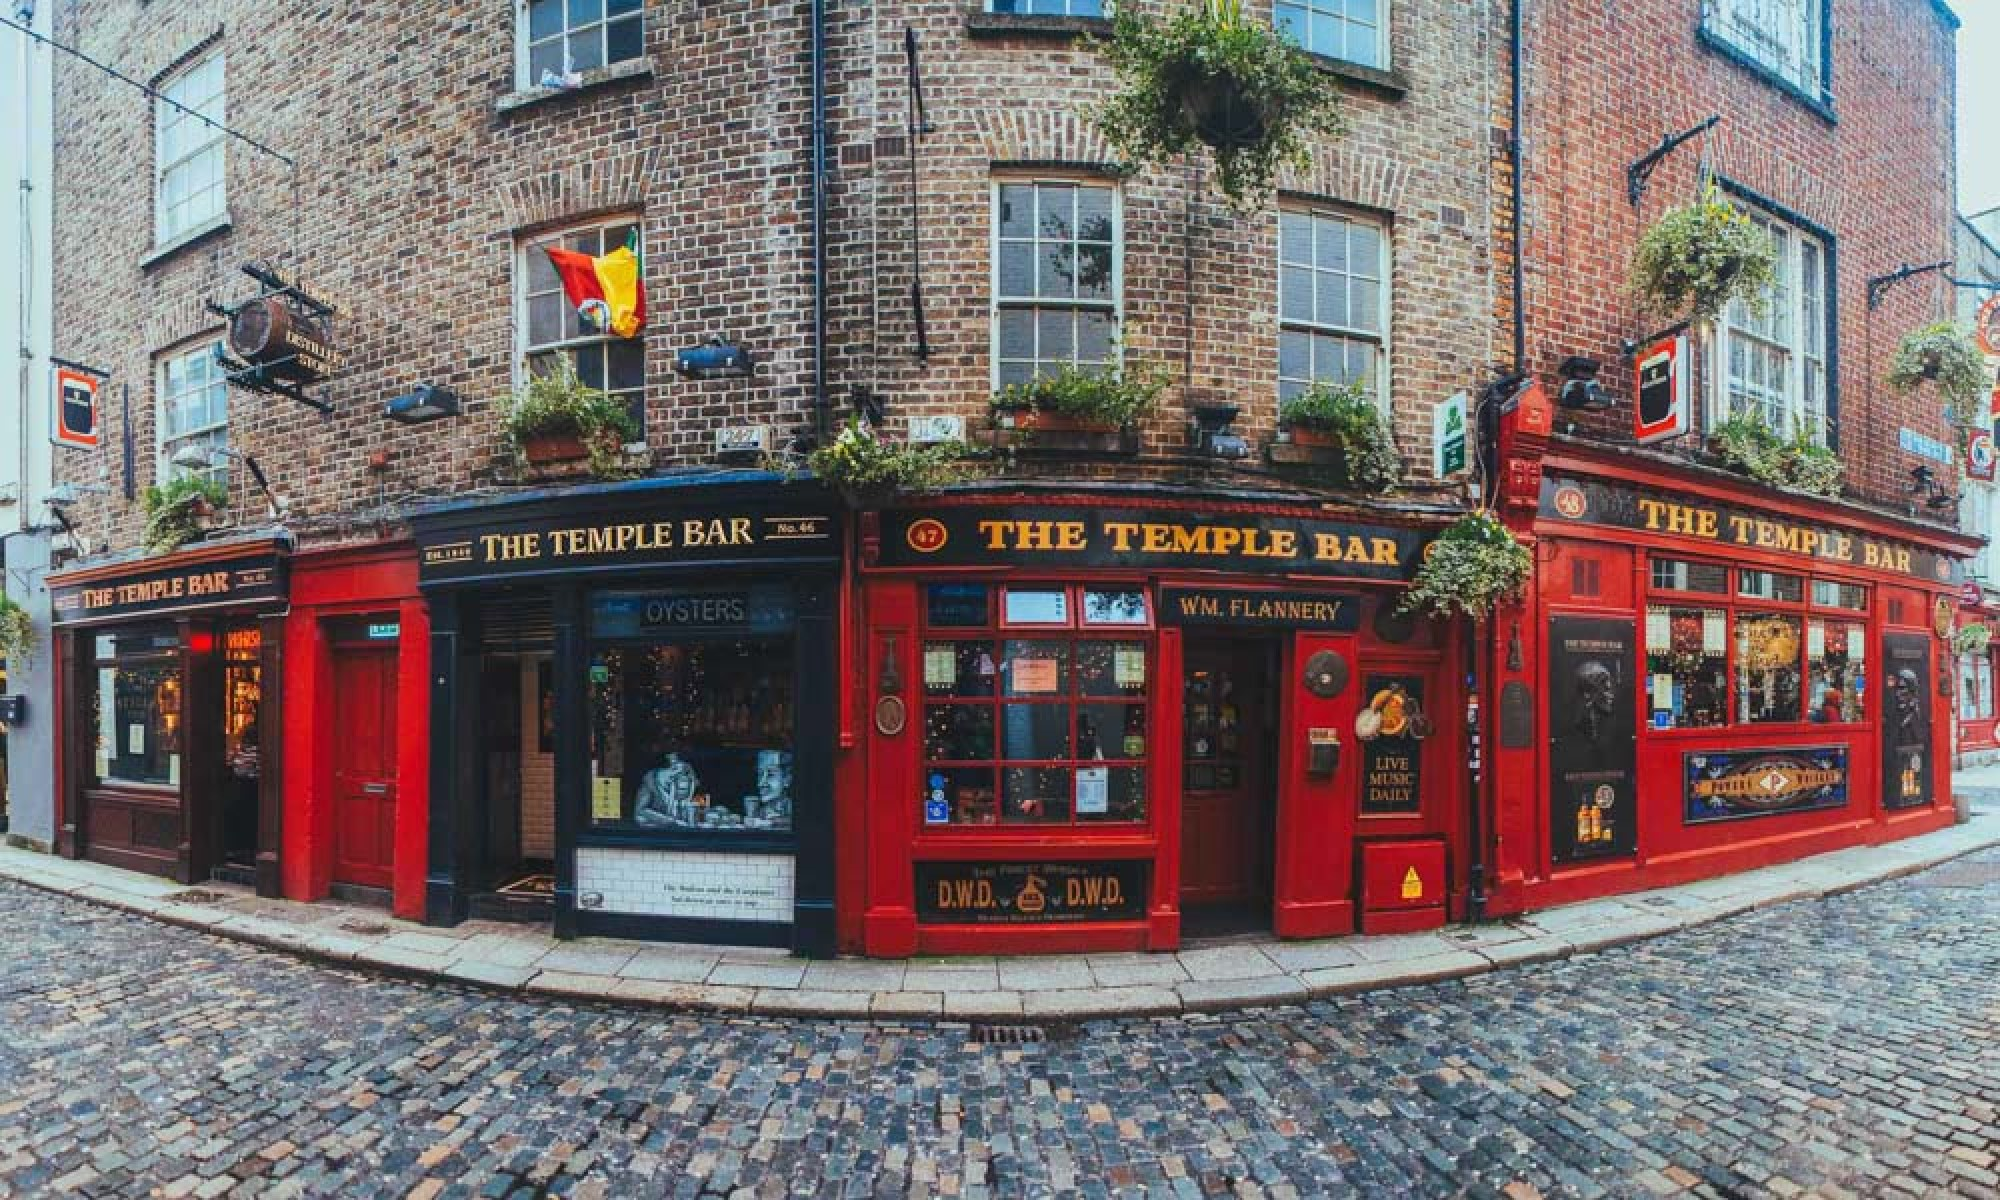 Things to do in Dublin: Explore Temple Bar